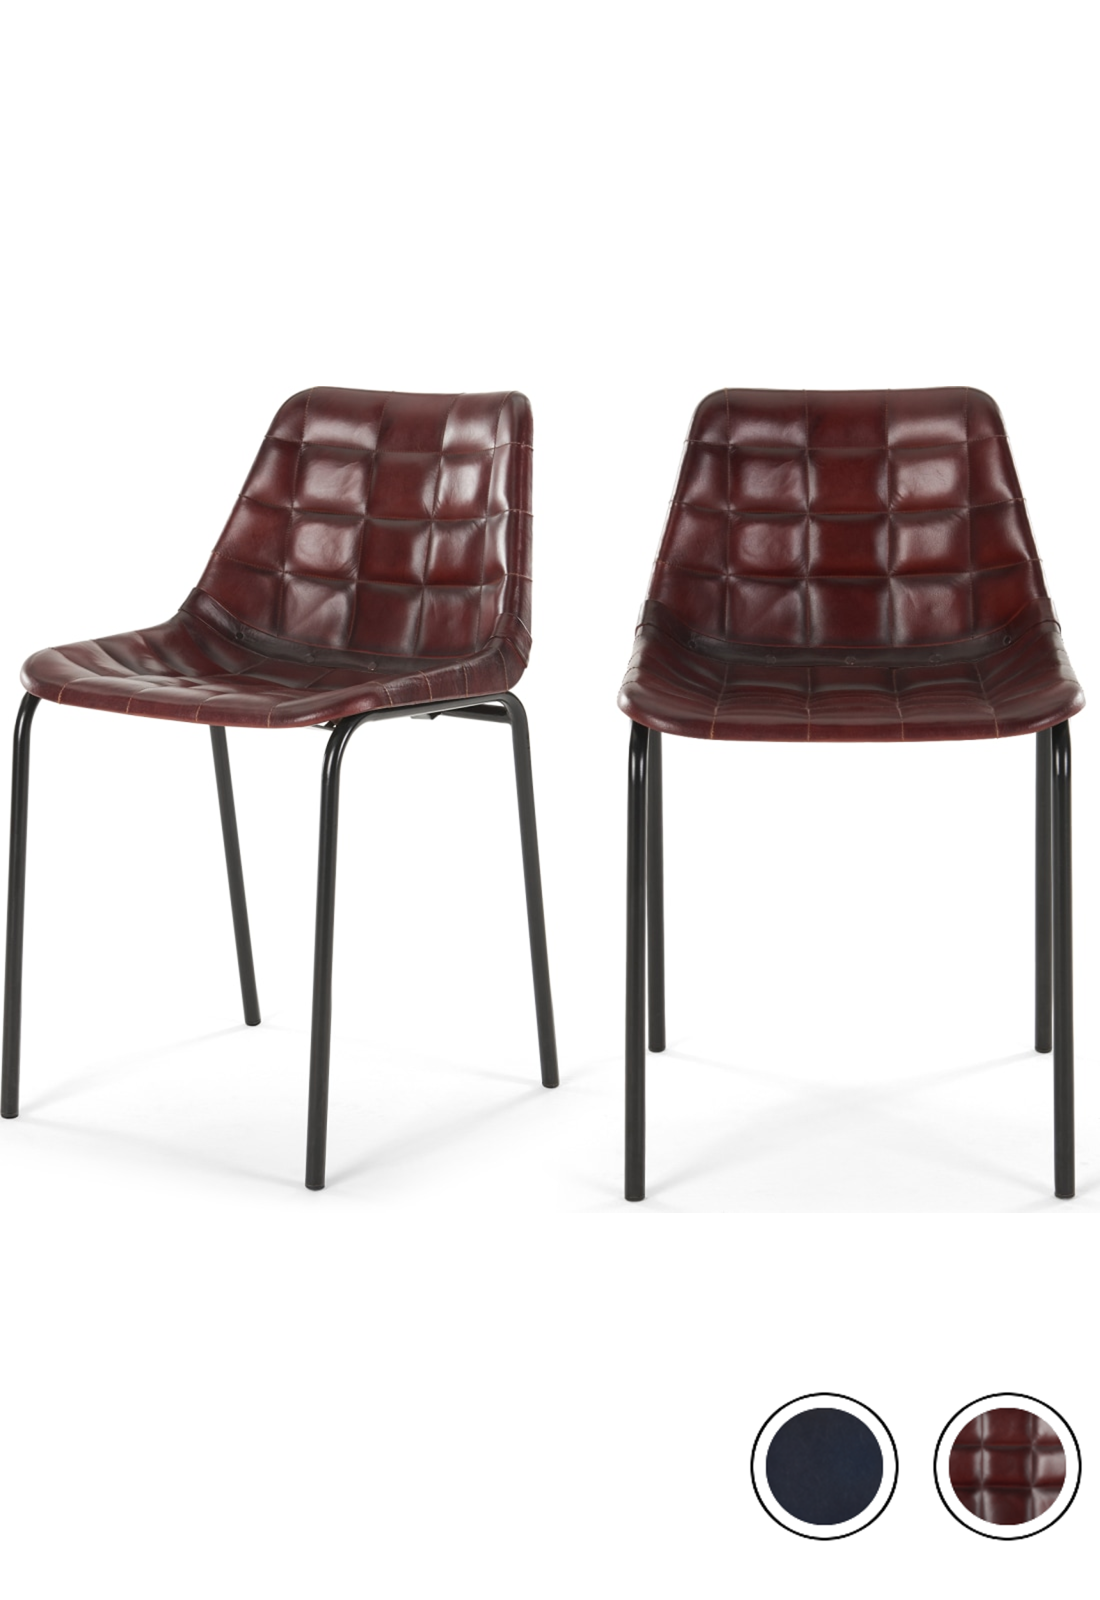 Set Of 2 Sudel Dining Chairs Ox Red Leather Dining Chairs Leather Dining Chairs Red Dining Chairs